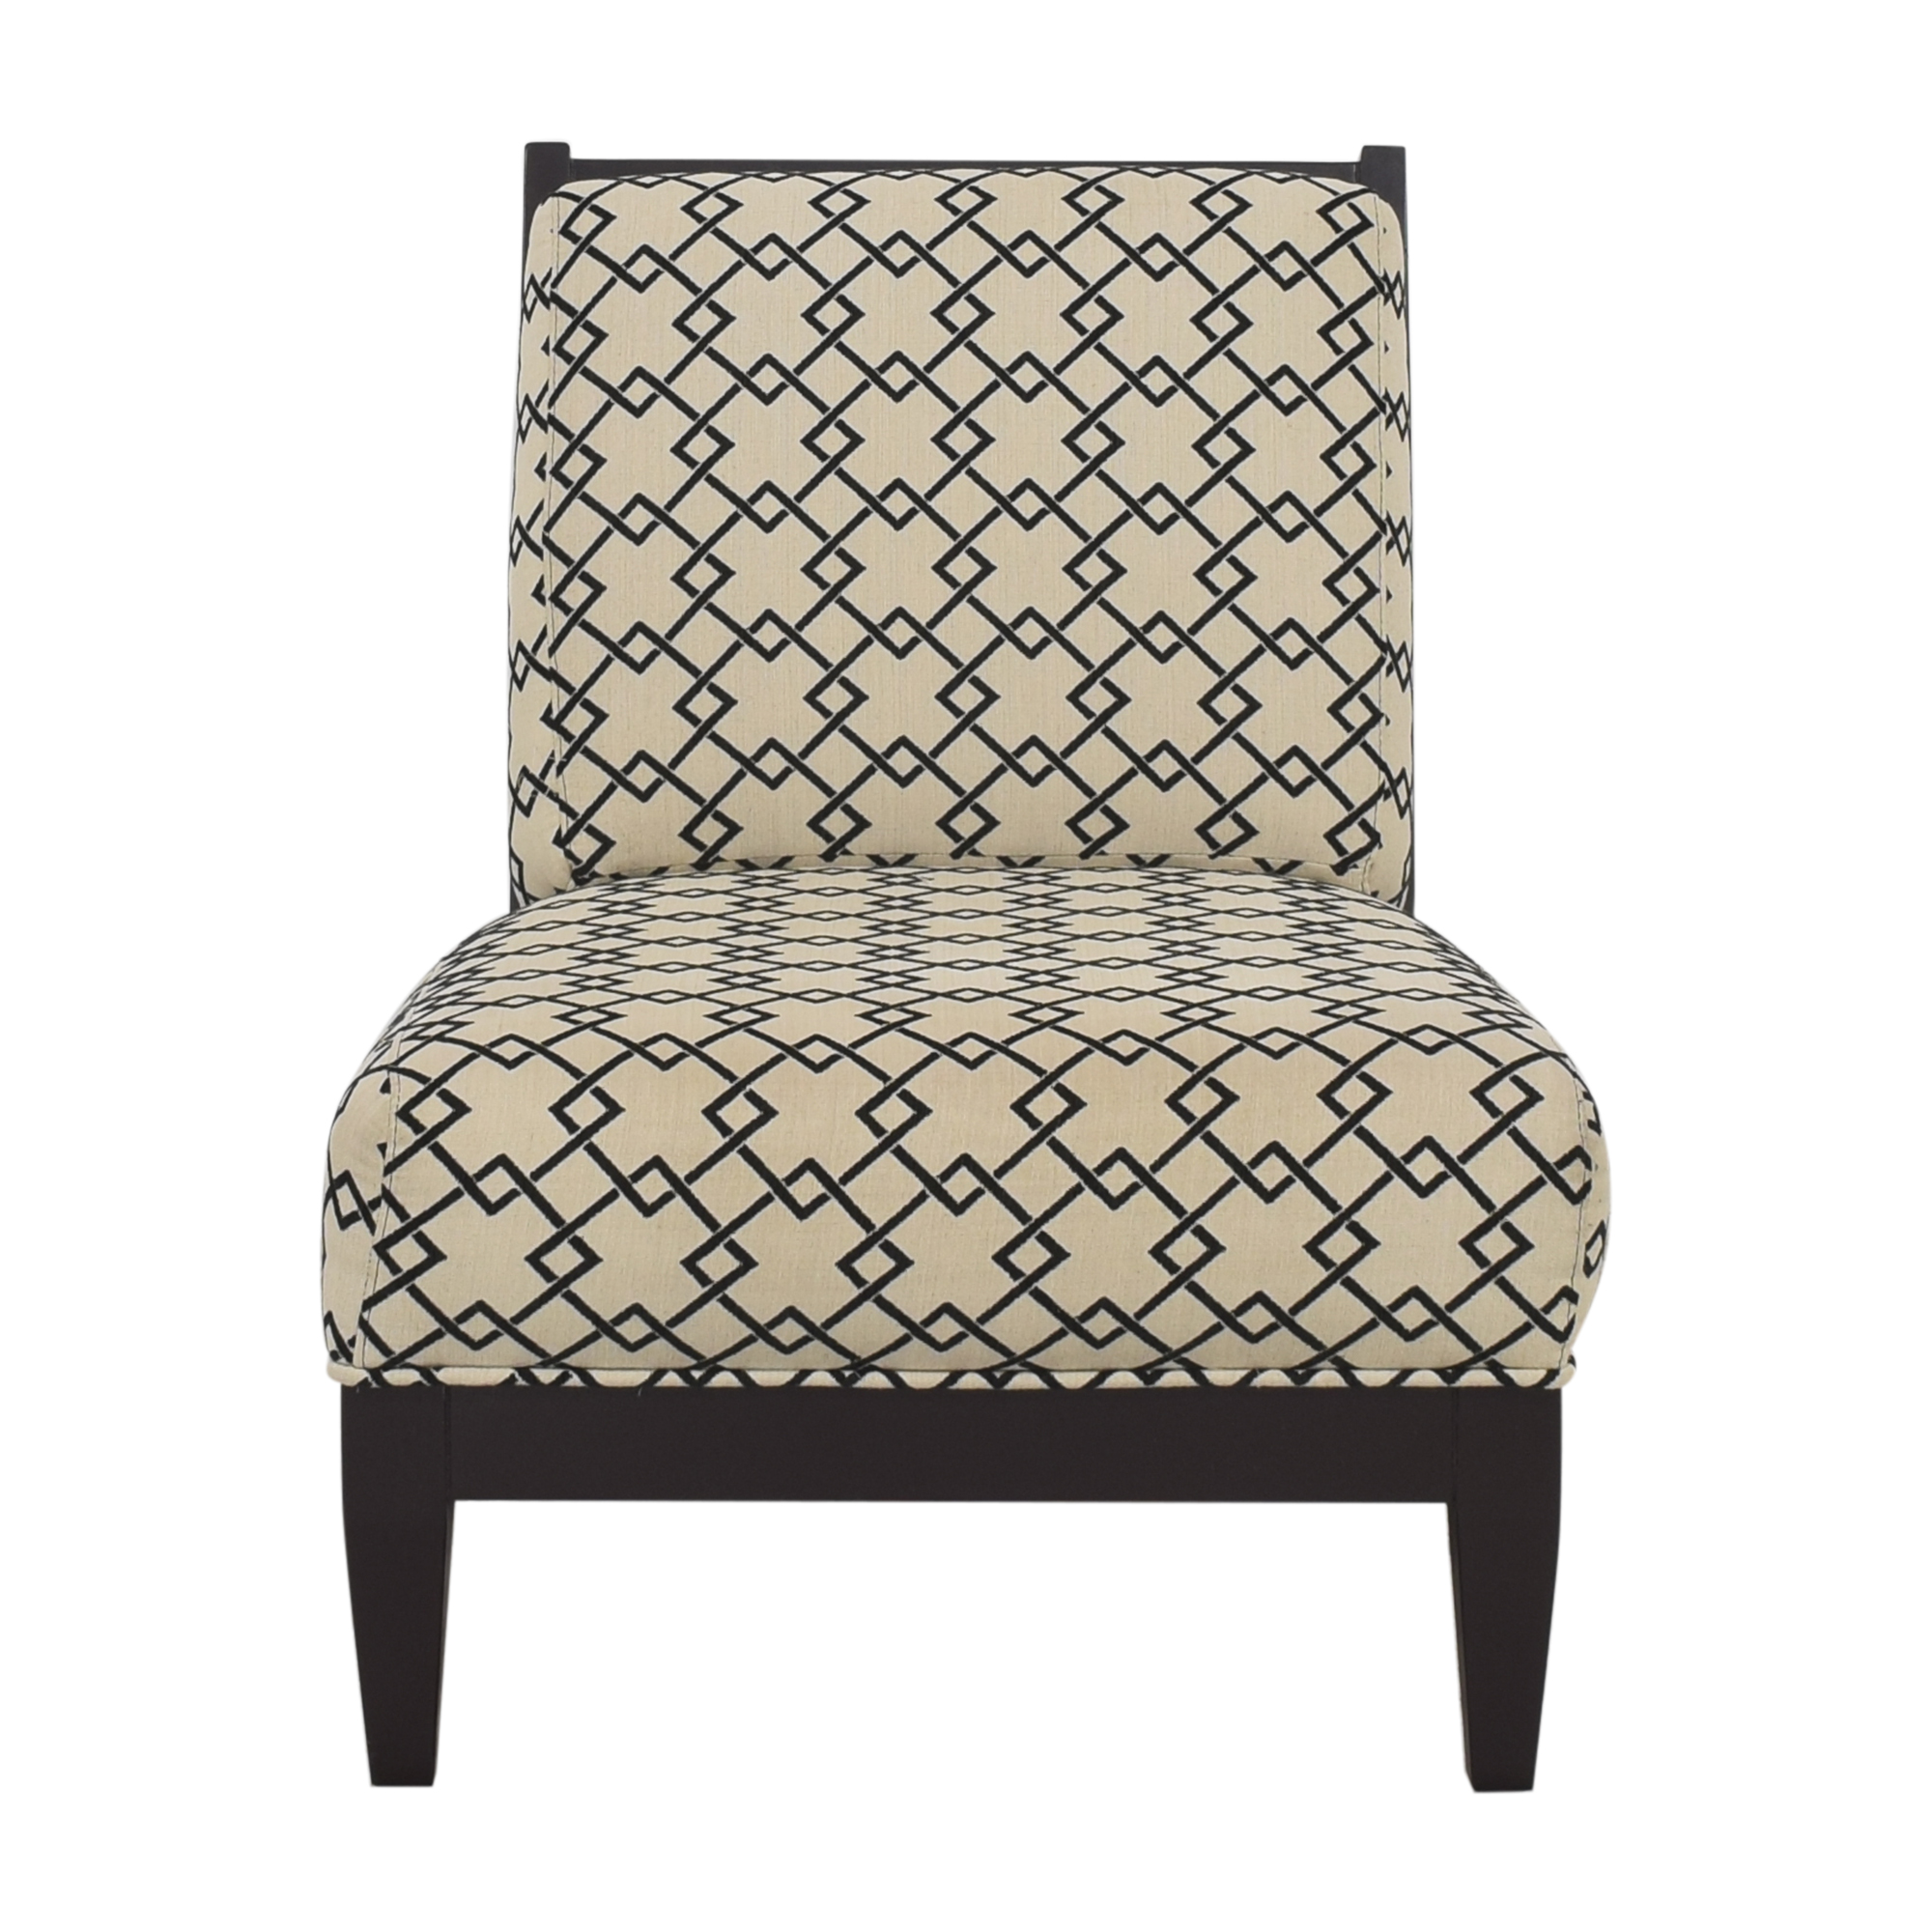 Raymour & Flanigan Raymour & Flanigan Sophie Armless Accent Chair dimensions